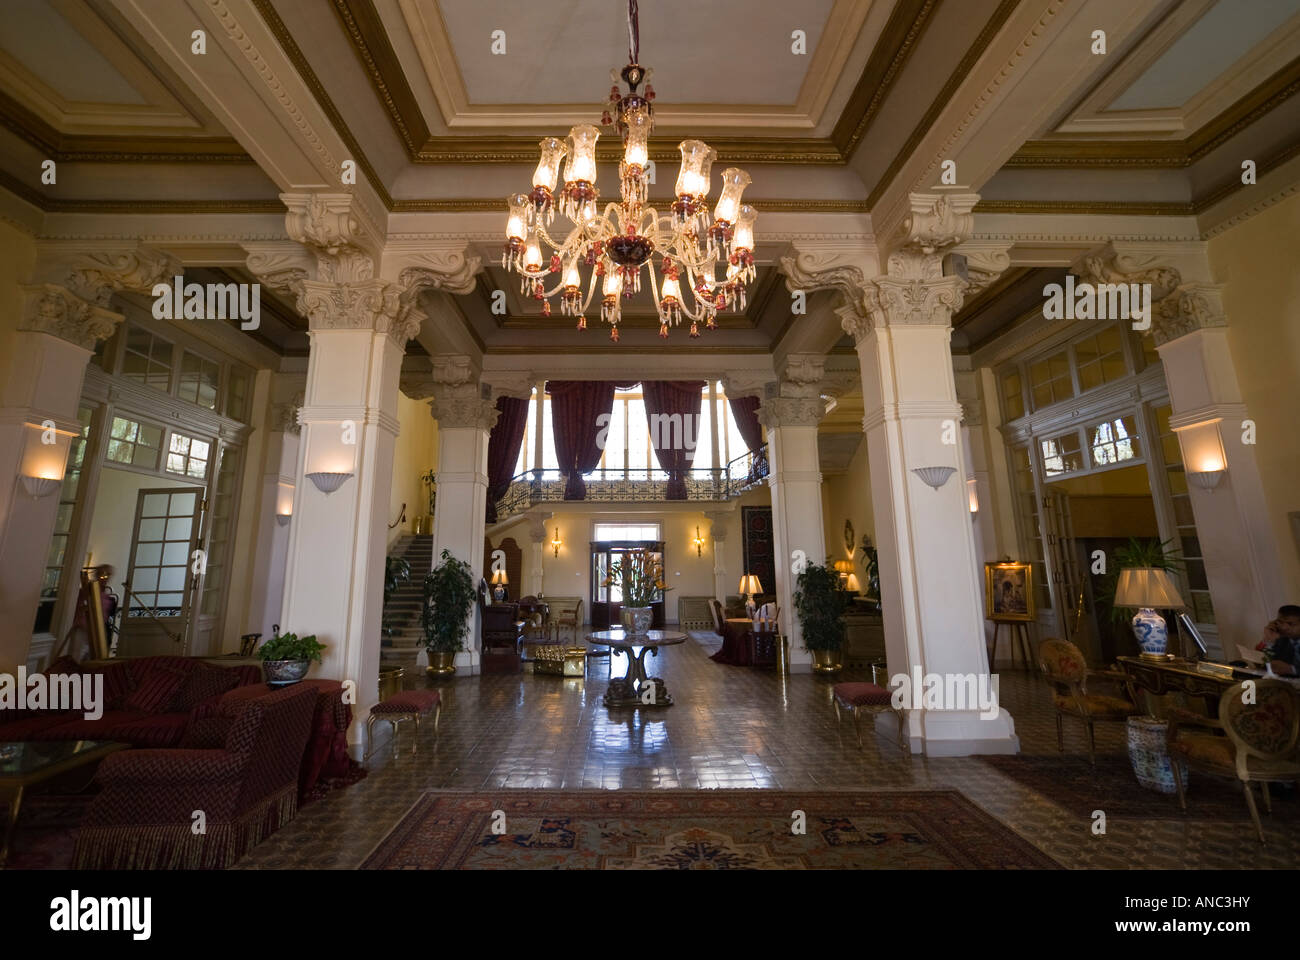 Hotel Icon Foyer : Luxor the winter palace hotel main reception foyer or